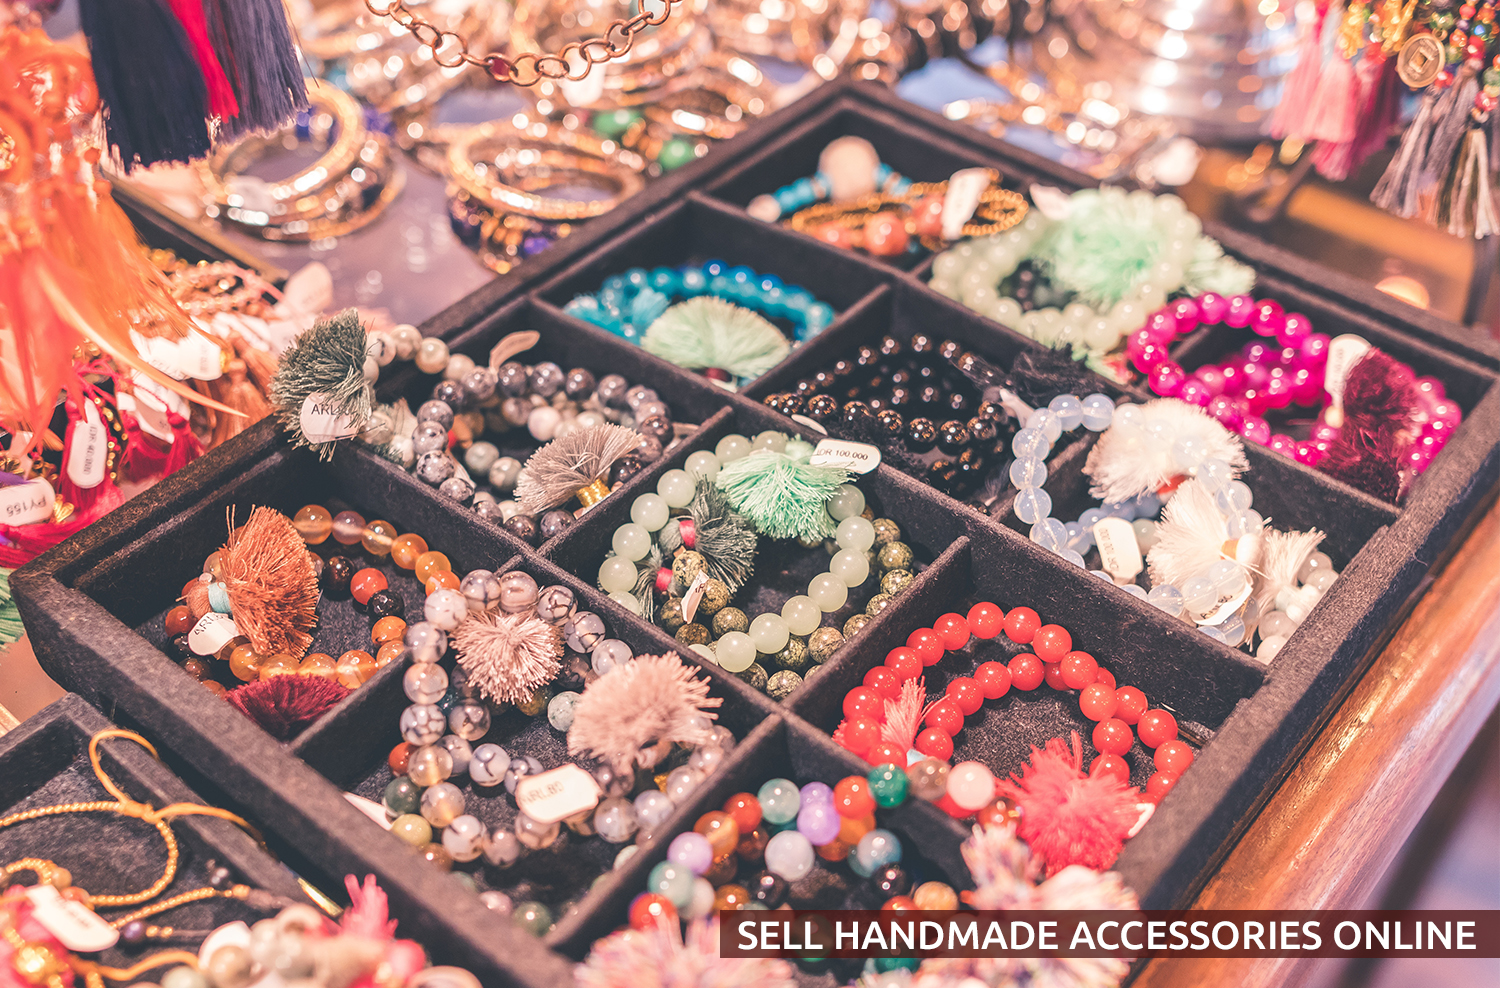 sell handmade accessories online